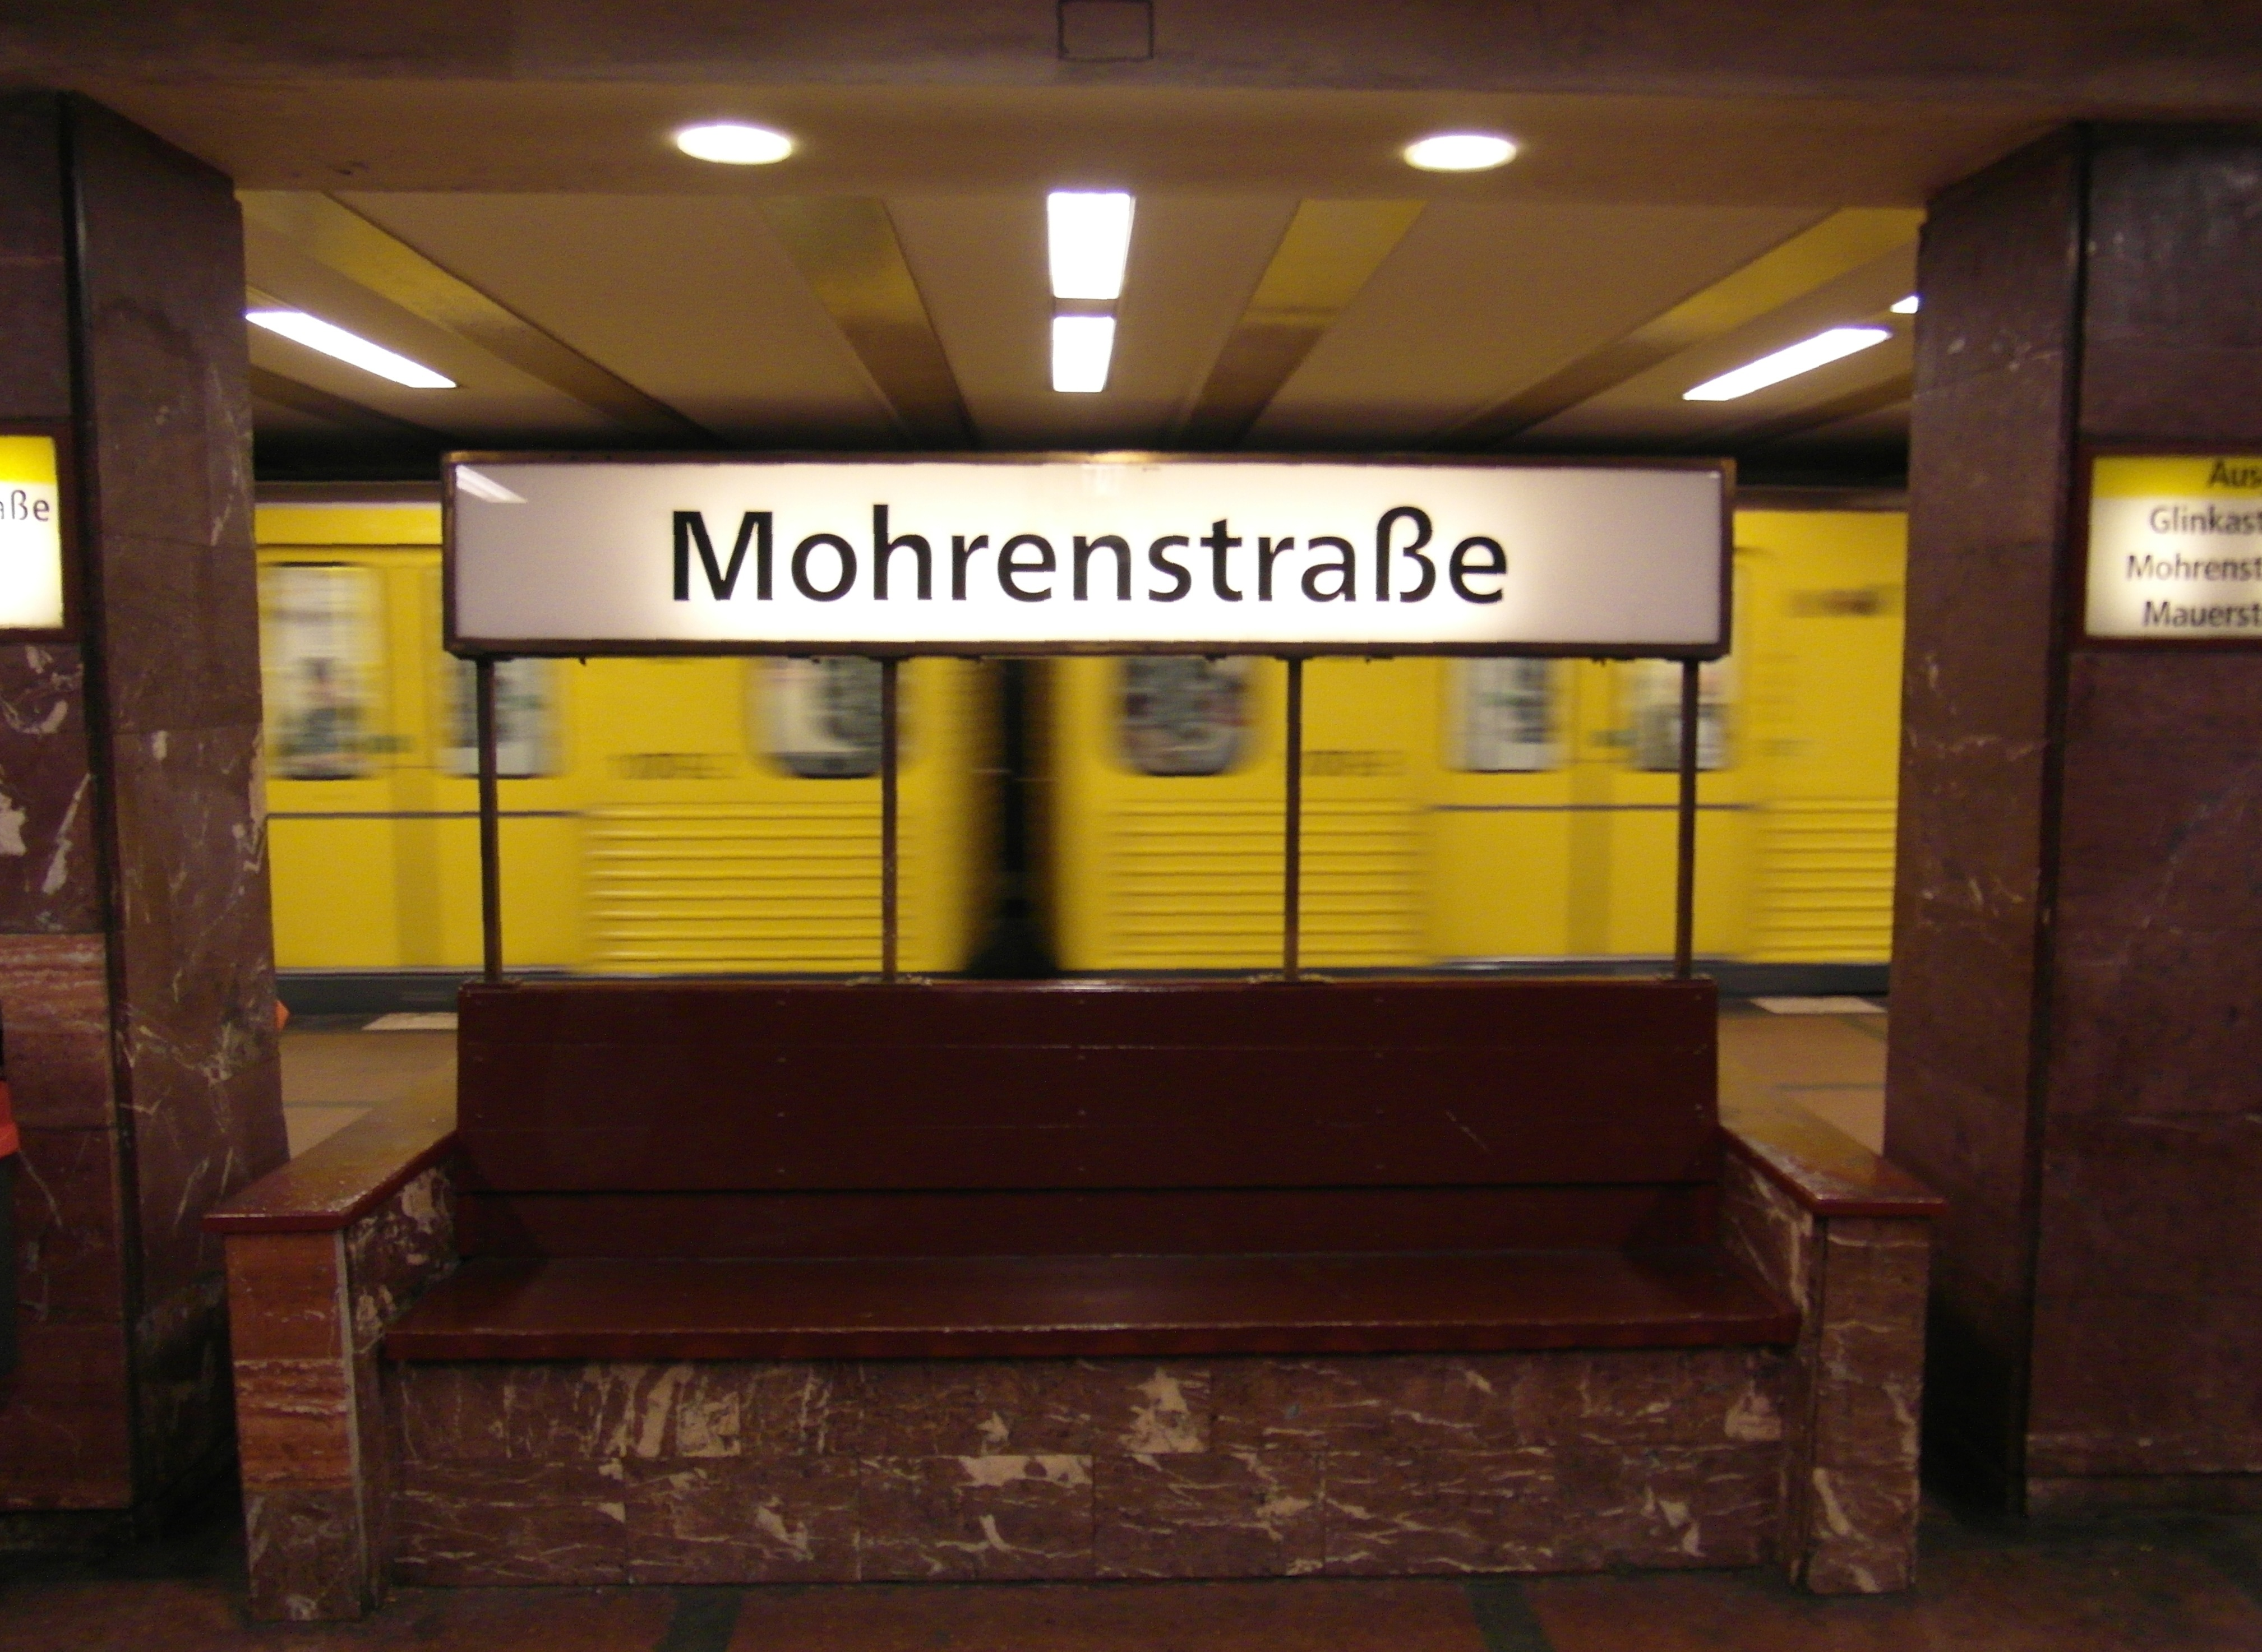 interior of U-Bahn station Mohrenstraße in Berlin showing a bench and sign in the foreground and a yellow subway train in motion in the background